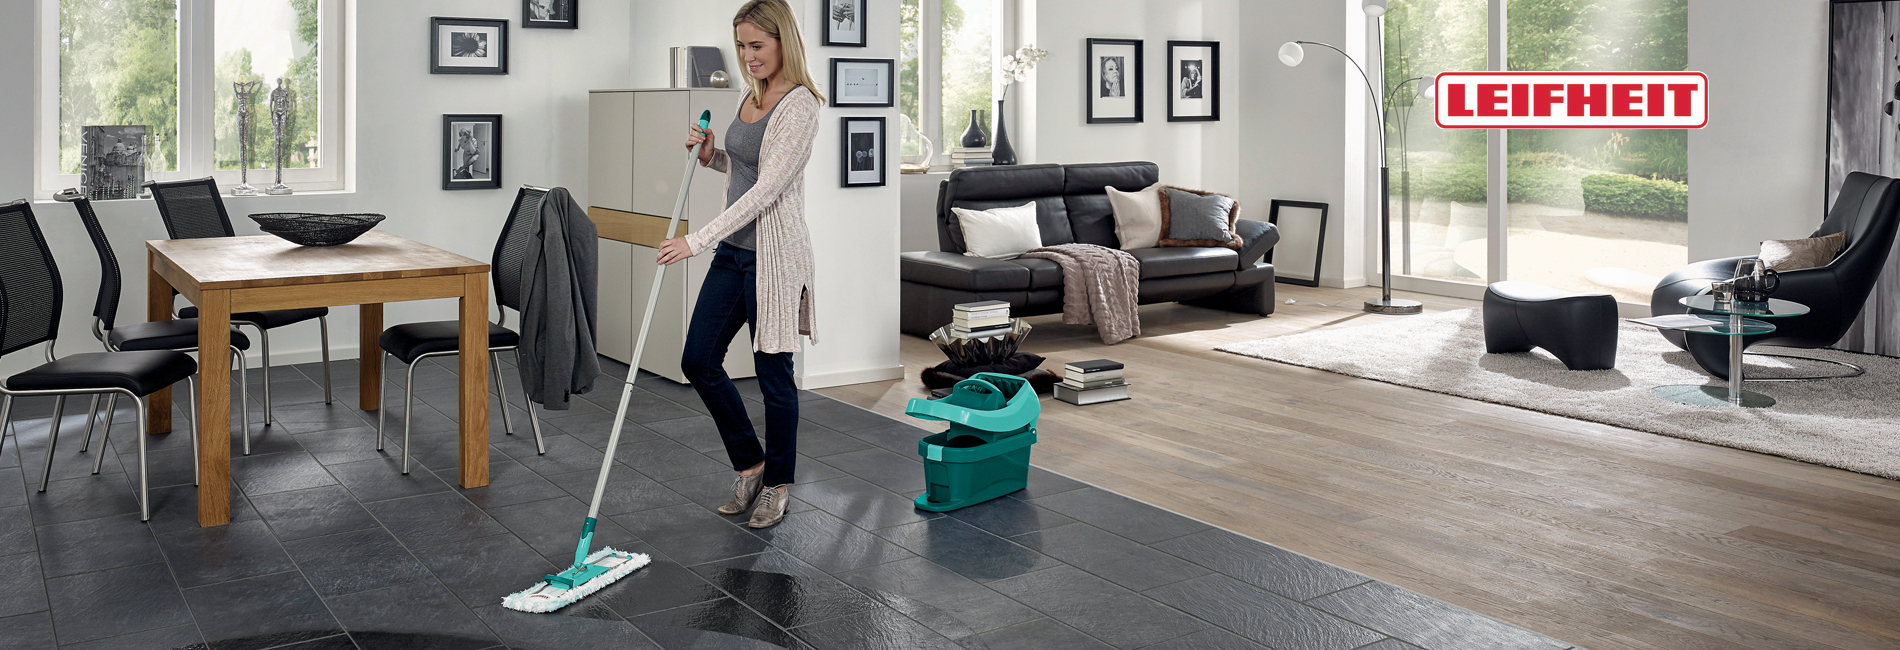 Clean home : Cleaning products by Leifheit - a clean solution for every task Floor Care &  Cleaning, Window  cleaning, Cleaning detergents, Gloves & Cloths